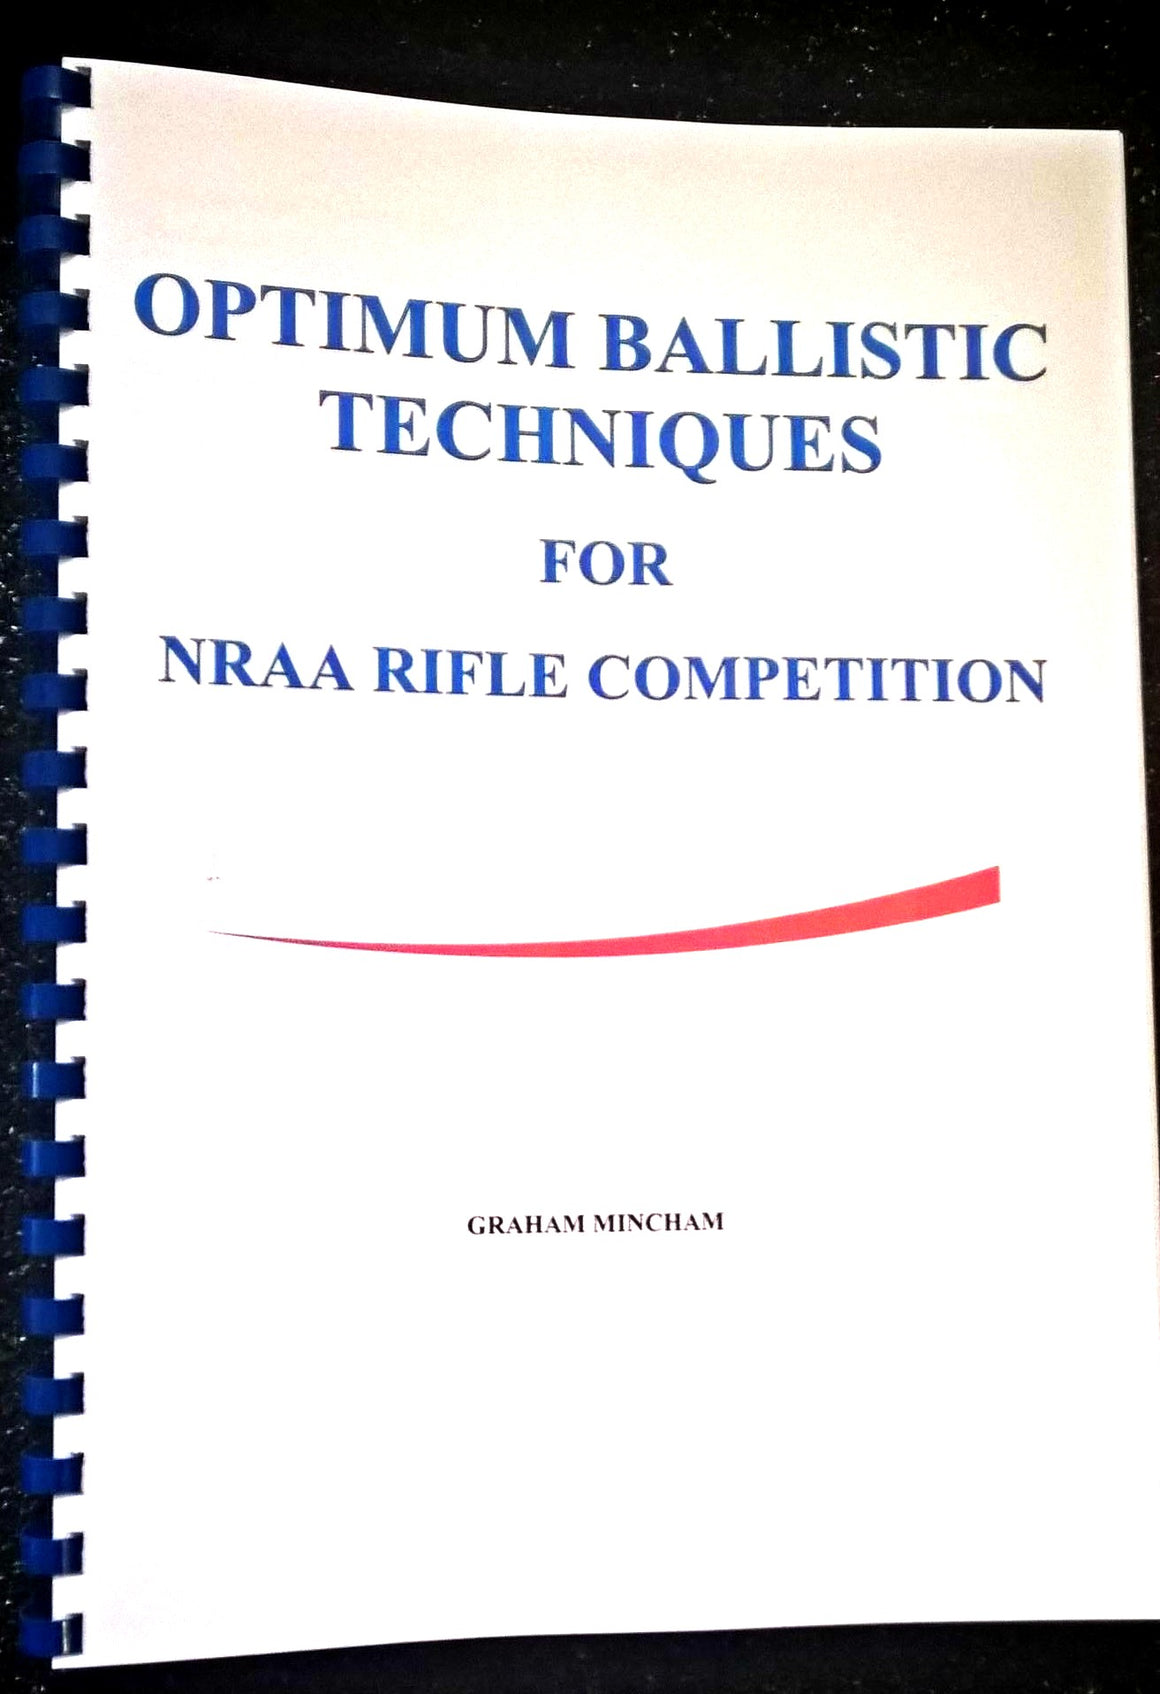 Optimum Ballistic Techniques for NRAA Rifle Competition by Graham Mincham